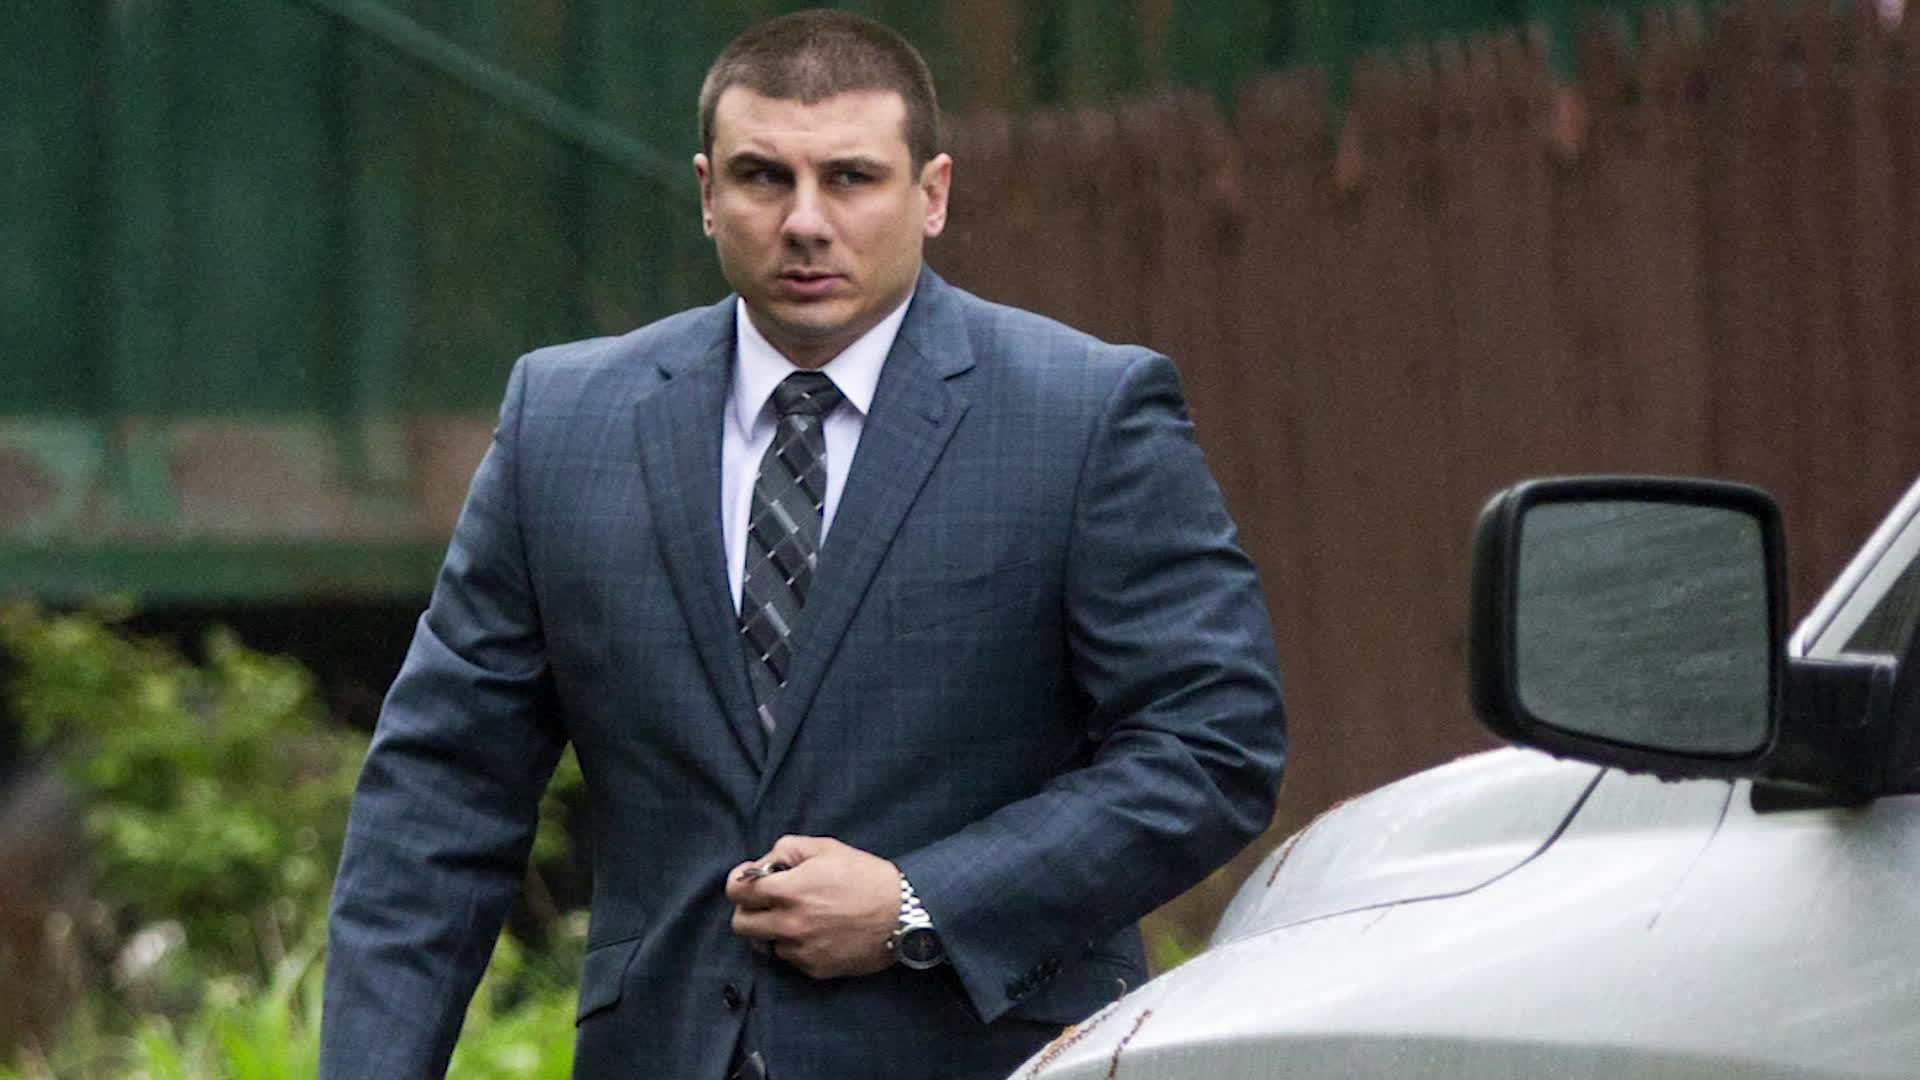 Former NYPD Officer Daniel Pantaleo. (Credit: Associated Press via CNN Wire)